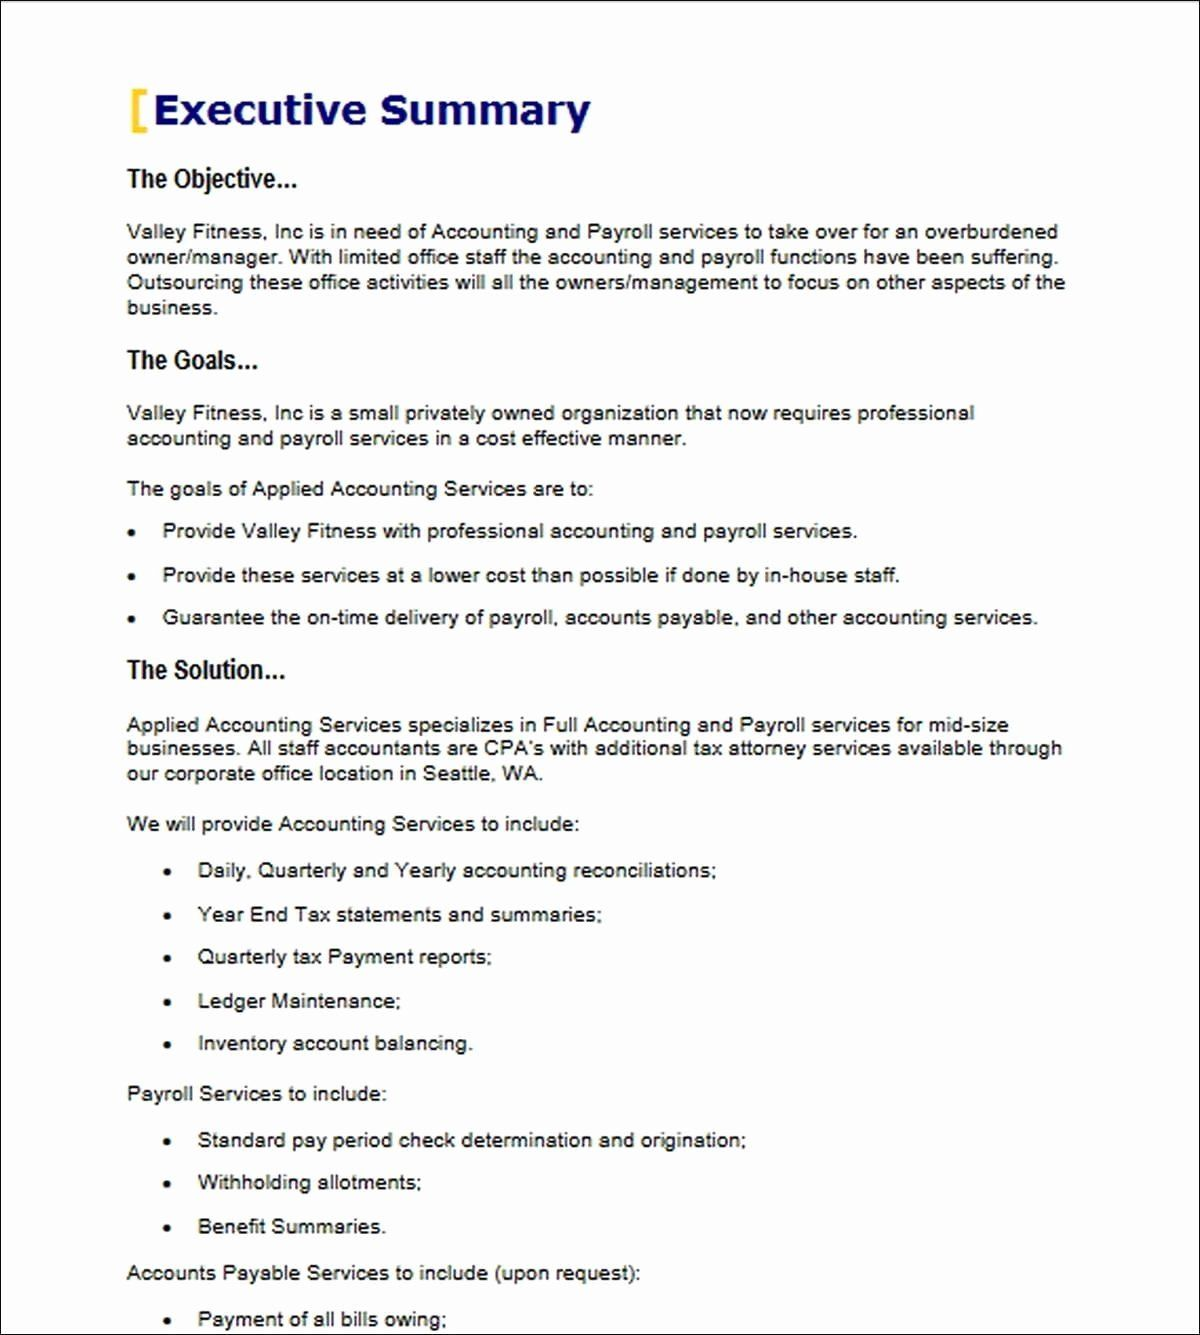 40 Executive Summary Sample for Proposal in 2020